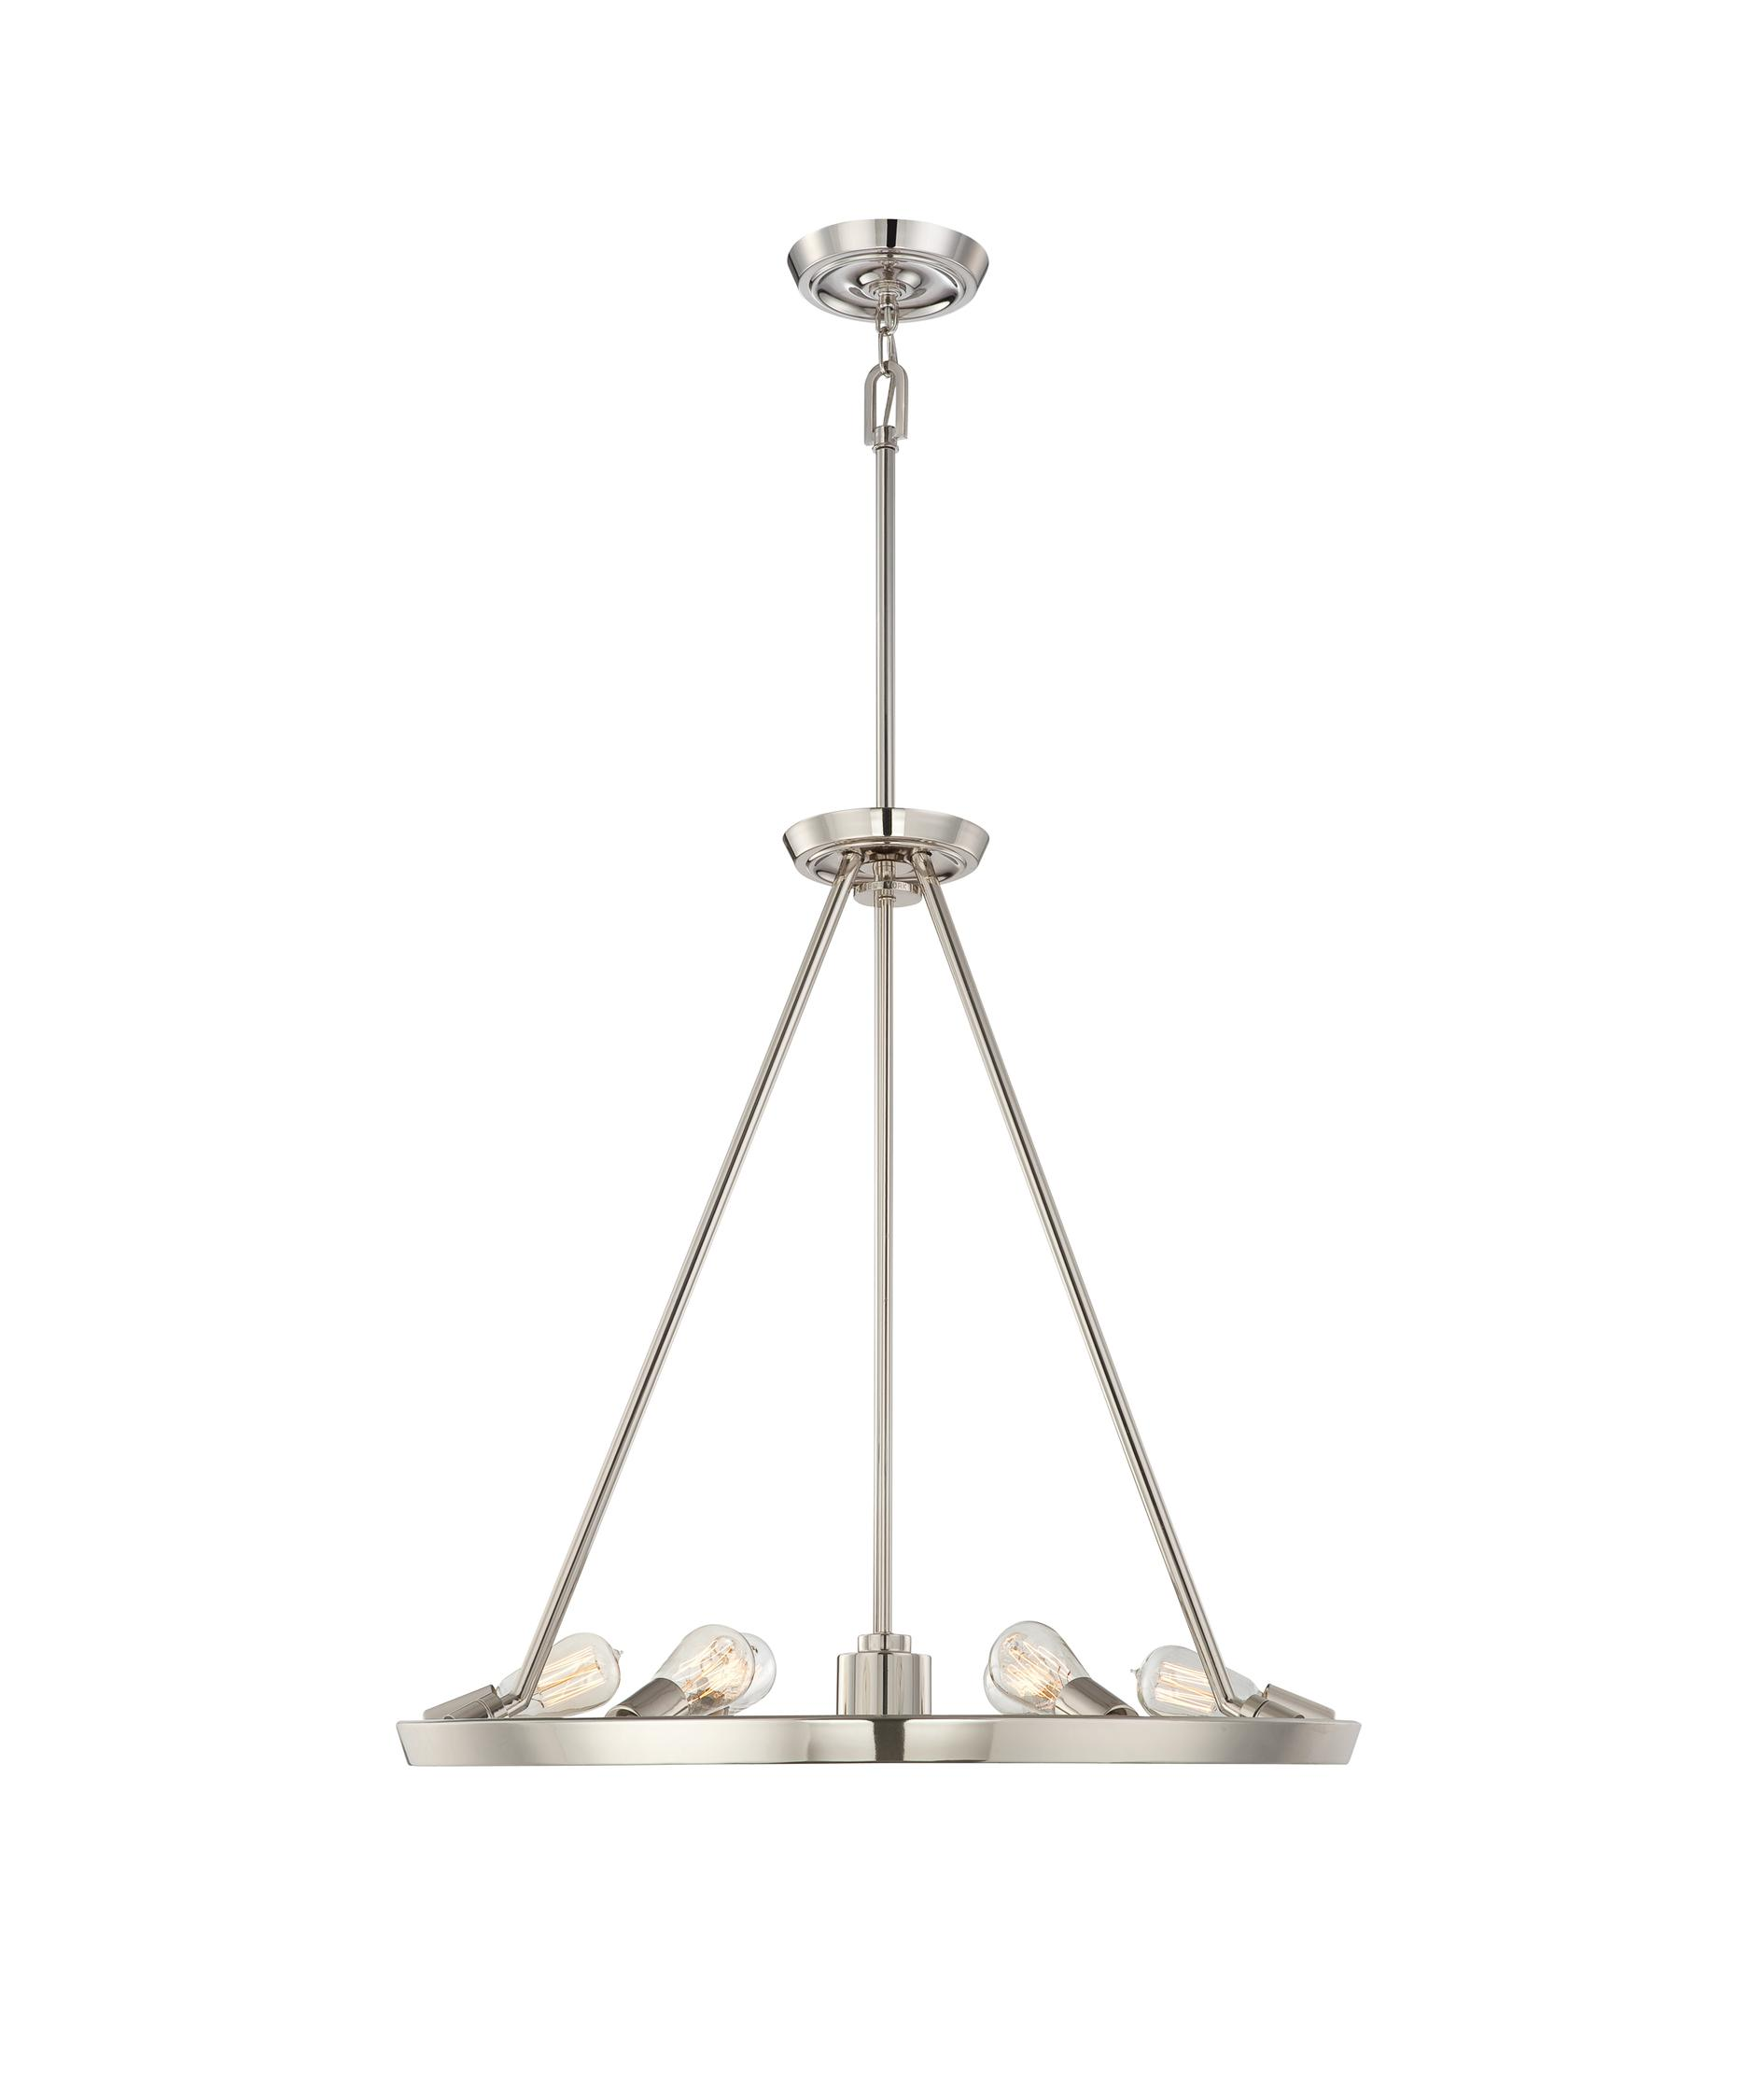 Quoizel Uptown Theater Row 28 Inch Wide 6 Light Chandelier – Quoizel Chandelier